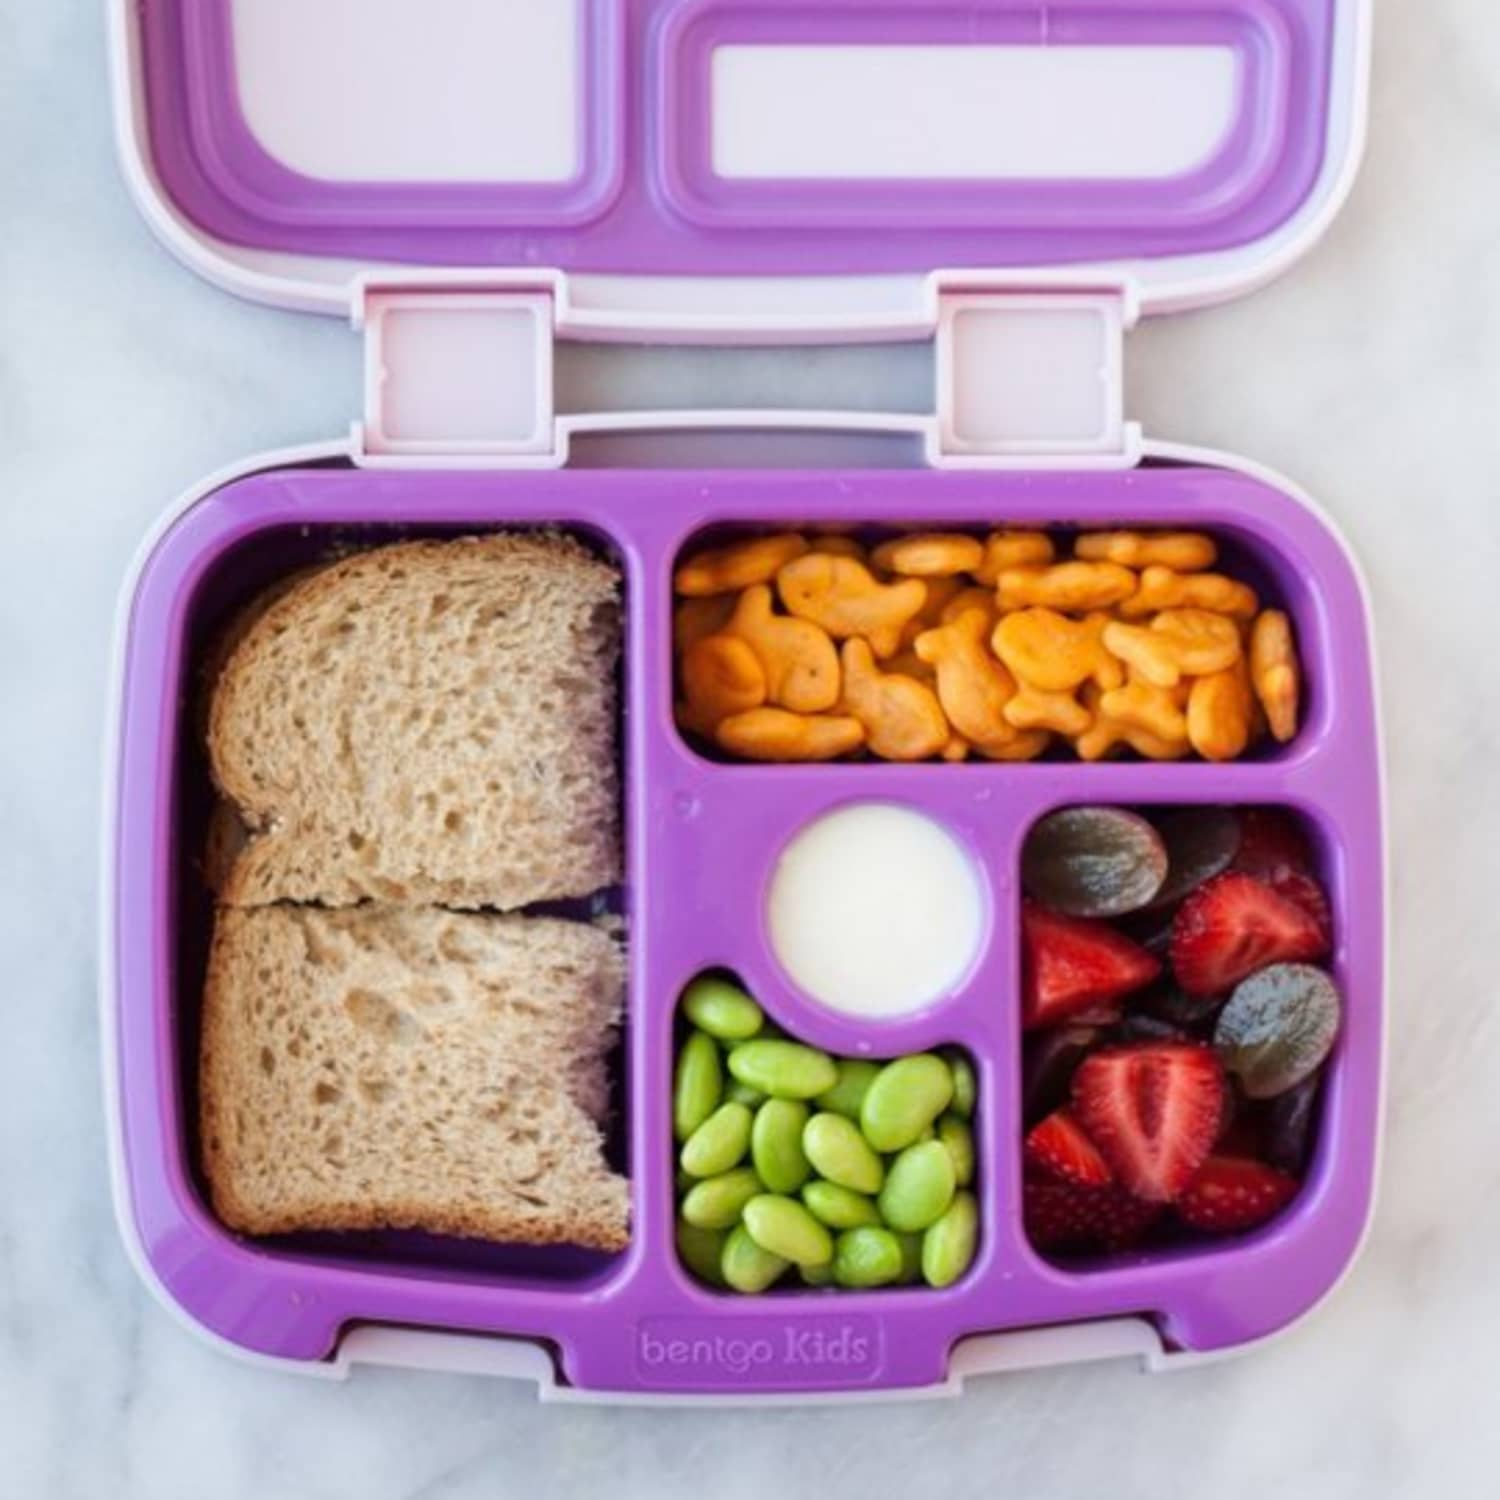 55fc114b3f55 Best Affordable Bento Boxes for Kids | Kitchn